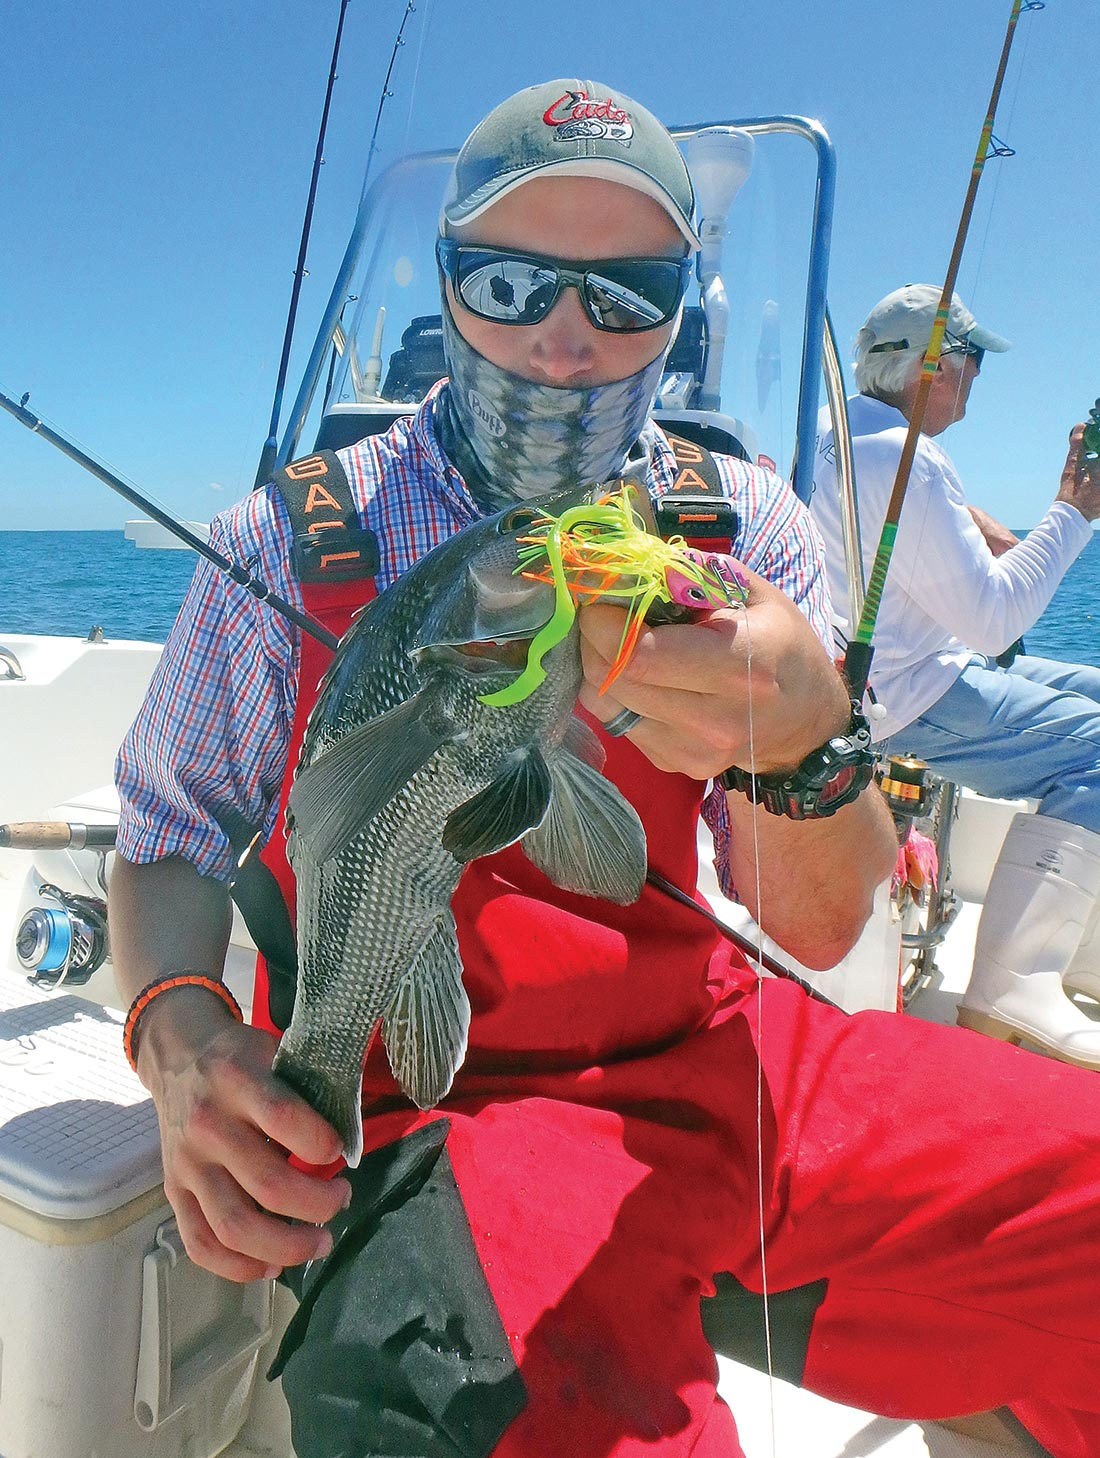 This keeper sea bass struck the author's JoeBaggs Flukie tipped with a Fat Cow Jig Strip last summer.